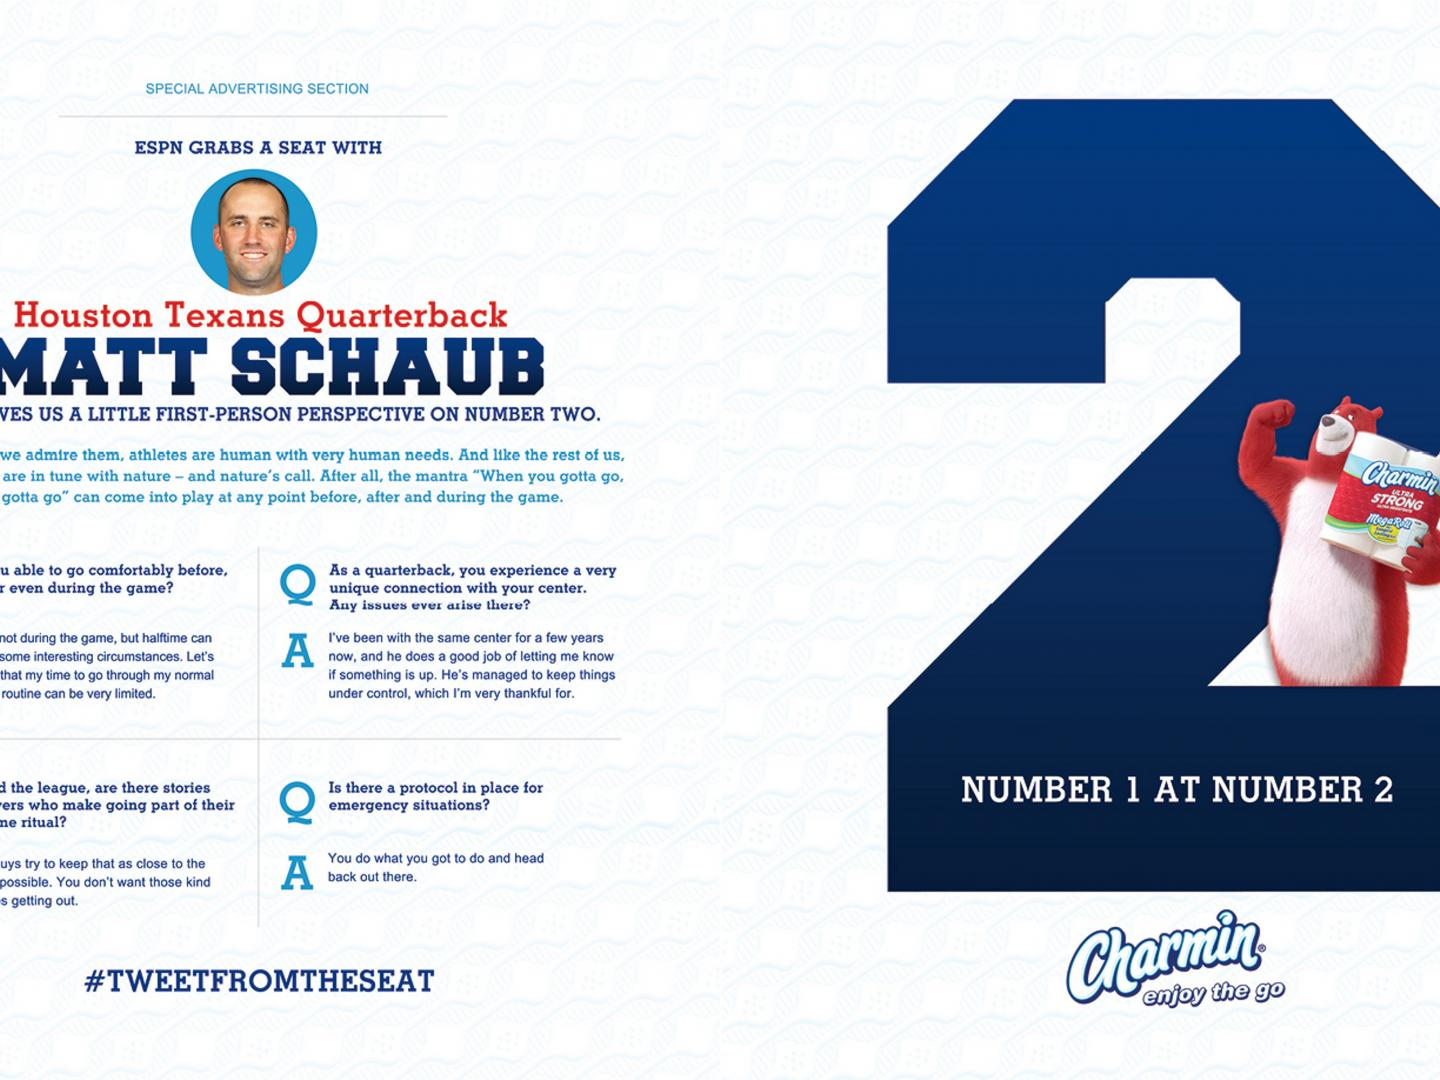 ESPN Grabs A Seat With Matt Schaub Thumbnail